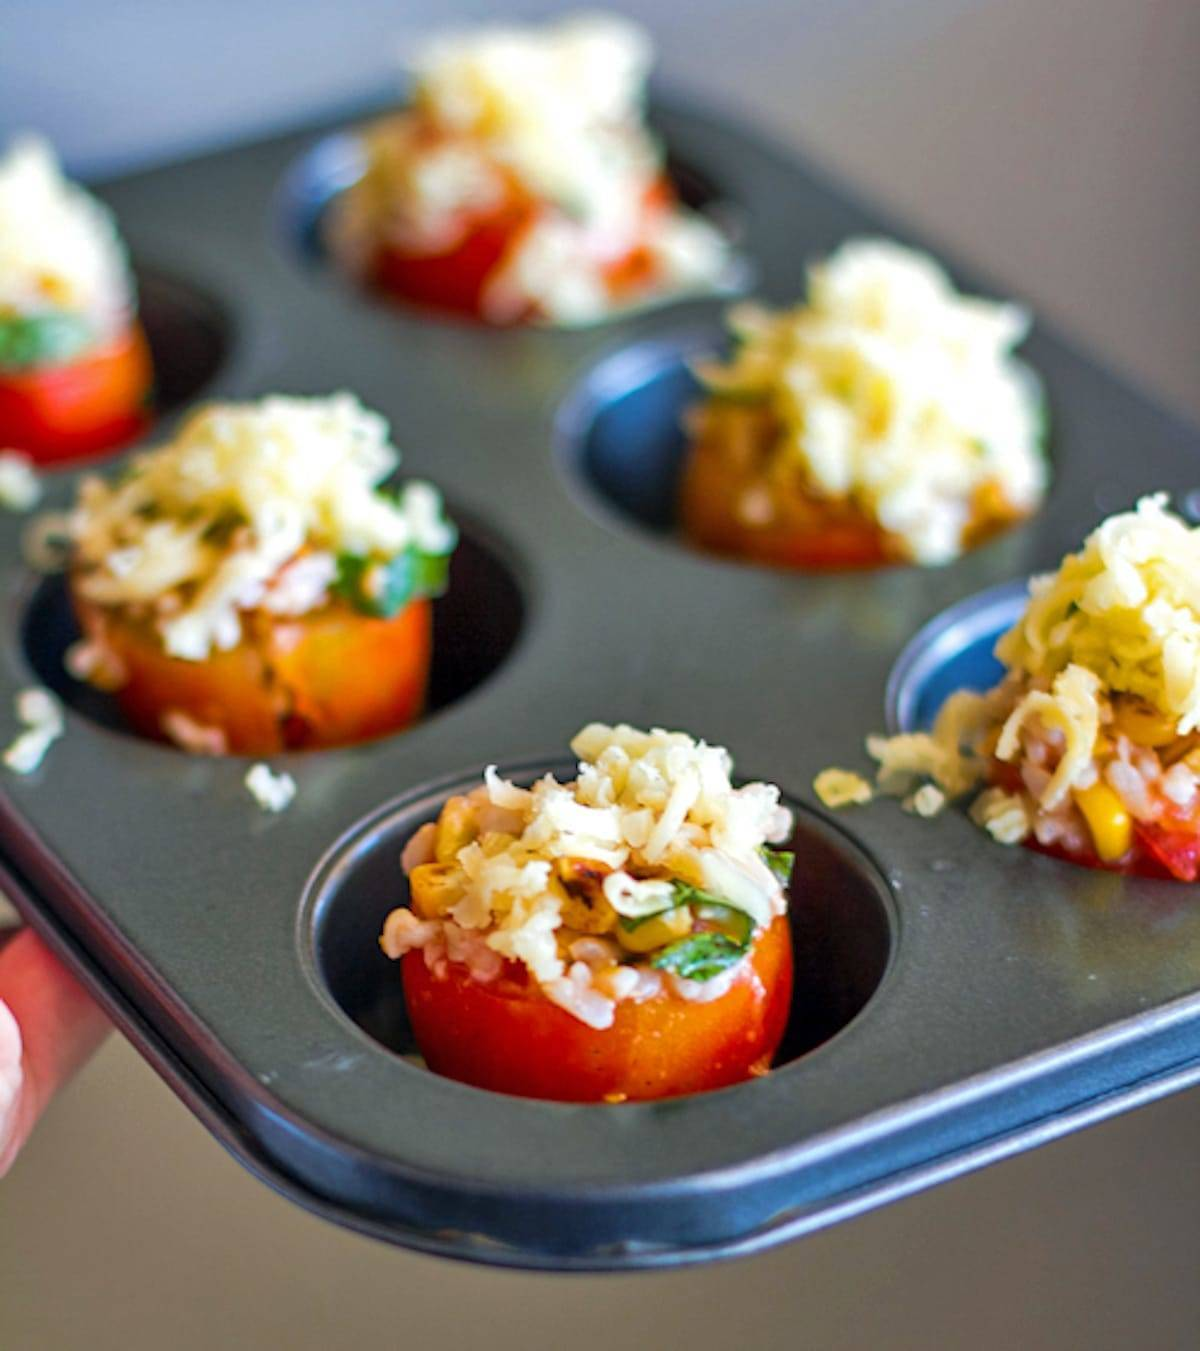 These stuffed tomatoes are filled to the brim with roasted corn, fresh basil, and topped with melted Mozzarella cheese. Simple and healthy! | pinchofyum.com